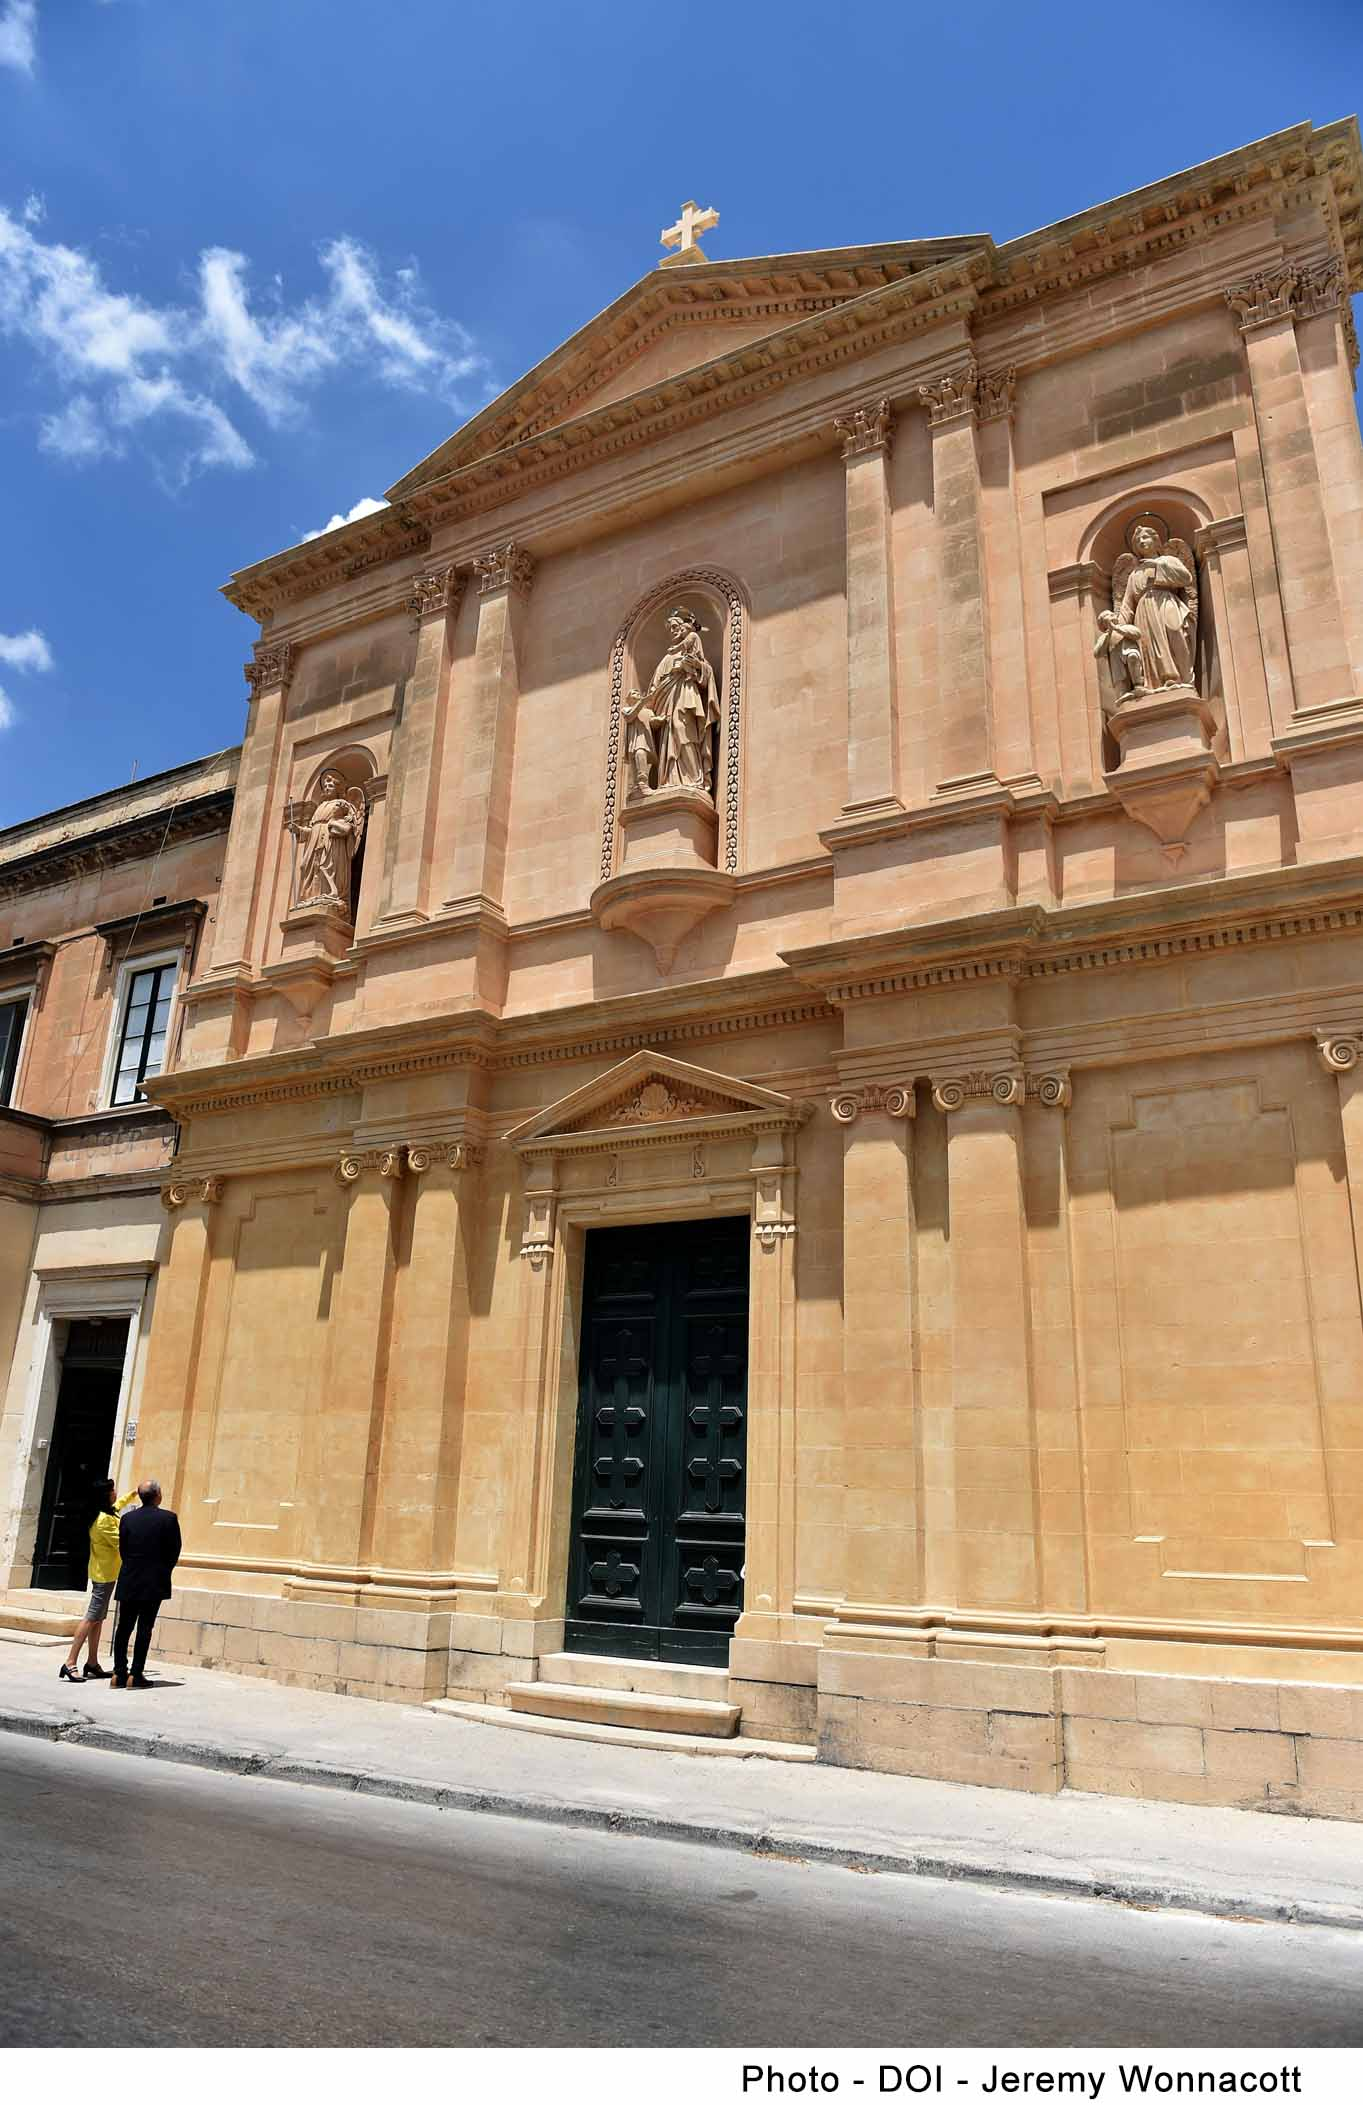 PRESS RELEASE BY THE MINISTRY FOR THE NATIONAL HERITAGE, THE ARTS AND LOCAL GOVERNMENT   Restoration has been completed on the façade and bell tower of St. Joseph's Church in Santa Venera